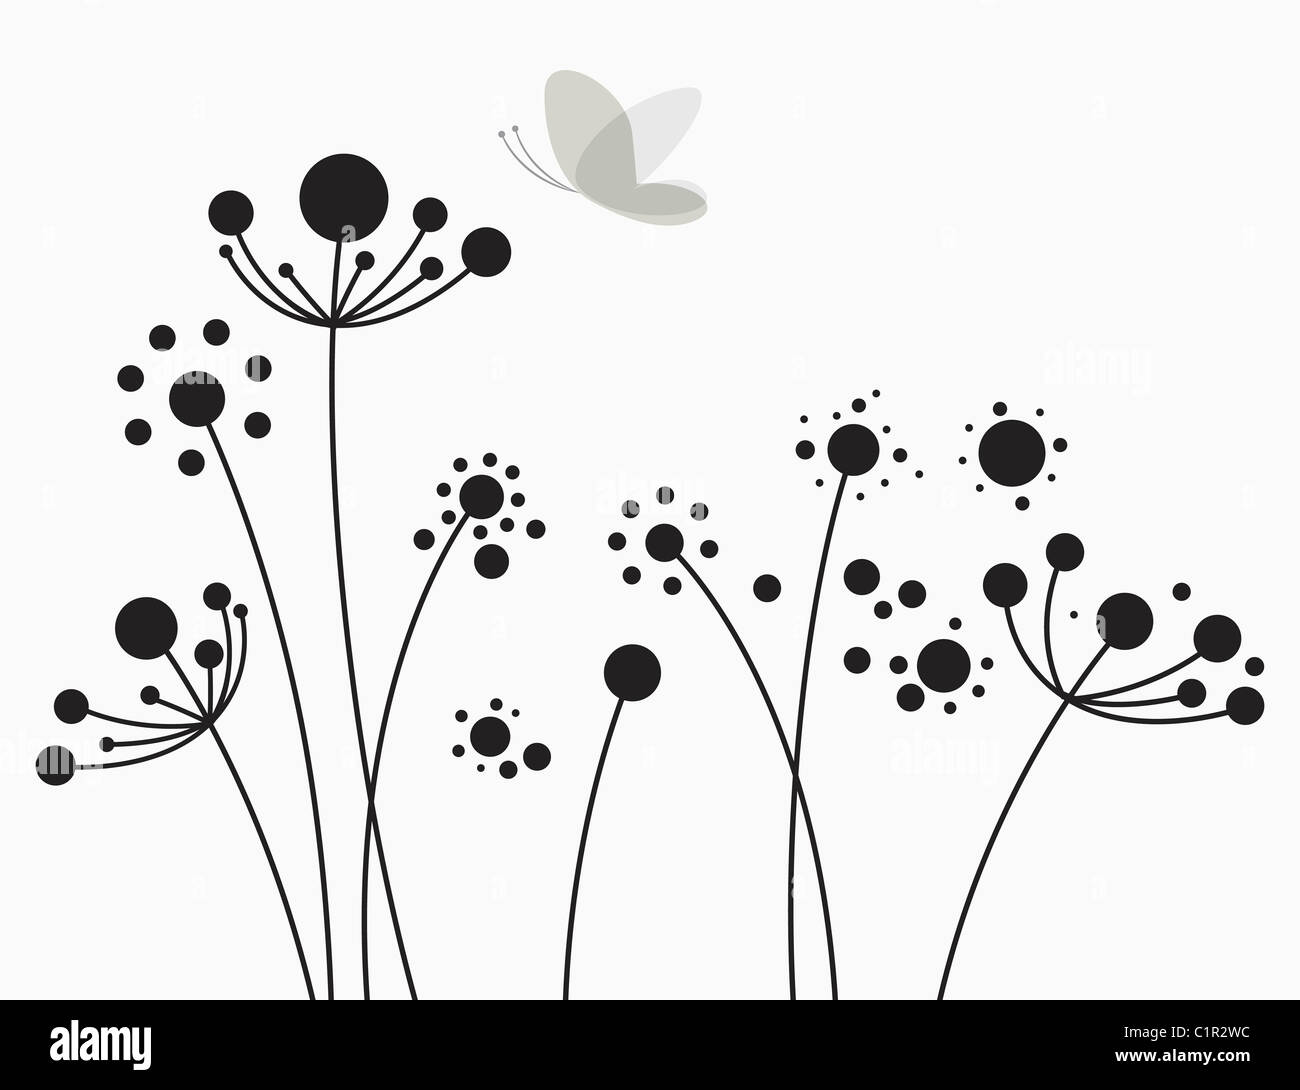 insects and plants illustration - Stock Image